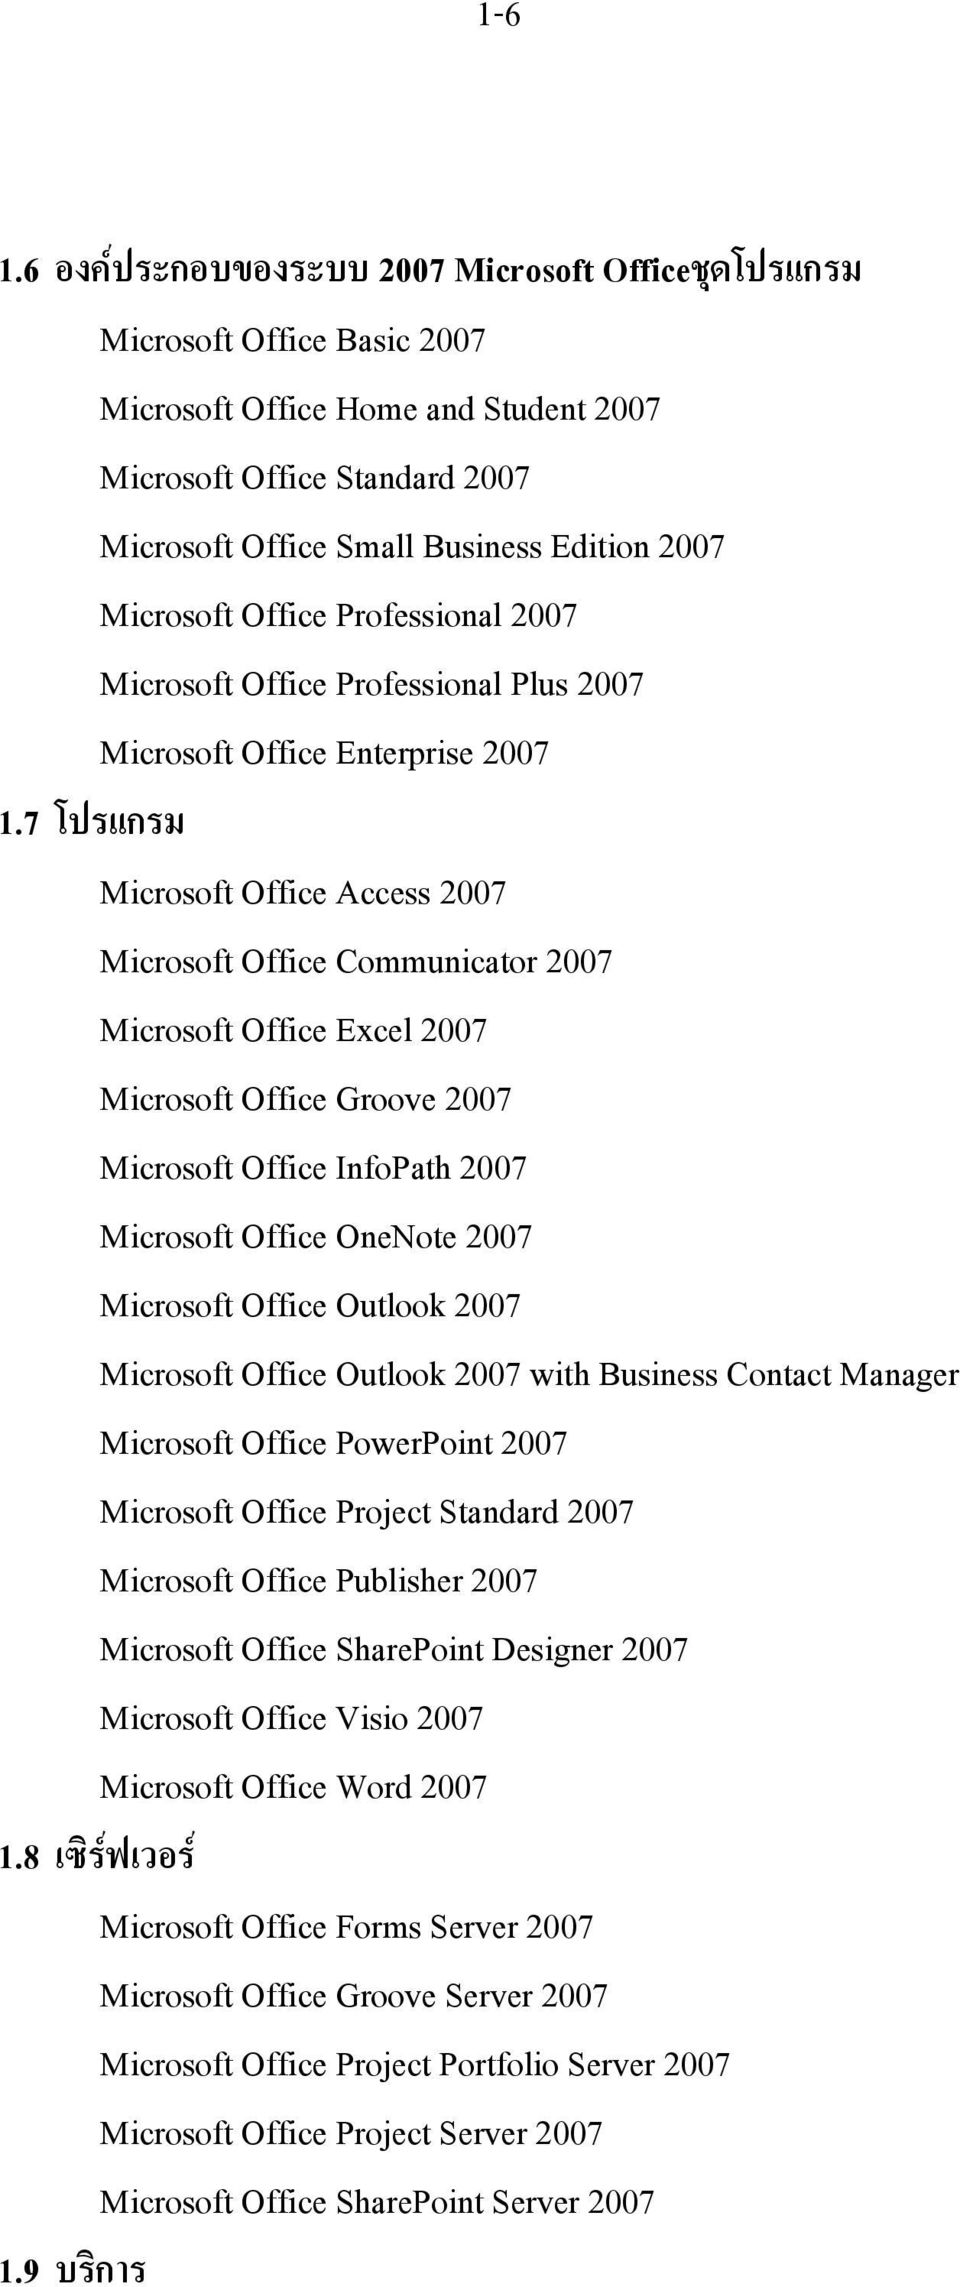 Microsoft Office Professional 2007 Microsoft Office Professional Plus 2007 Microsoft Office Enterprise 2007 1.